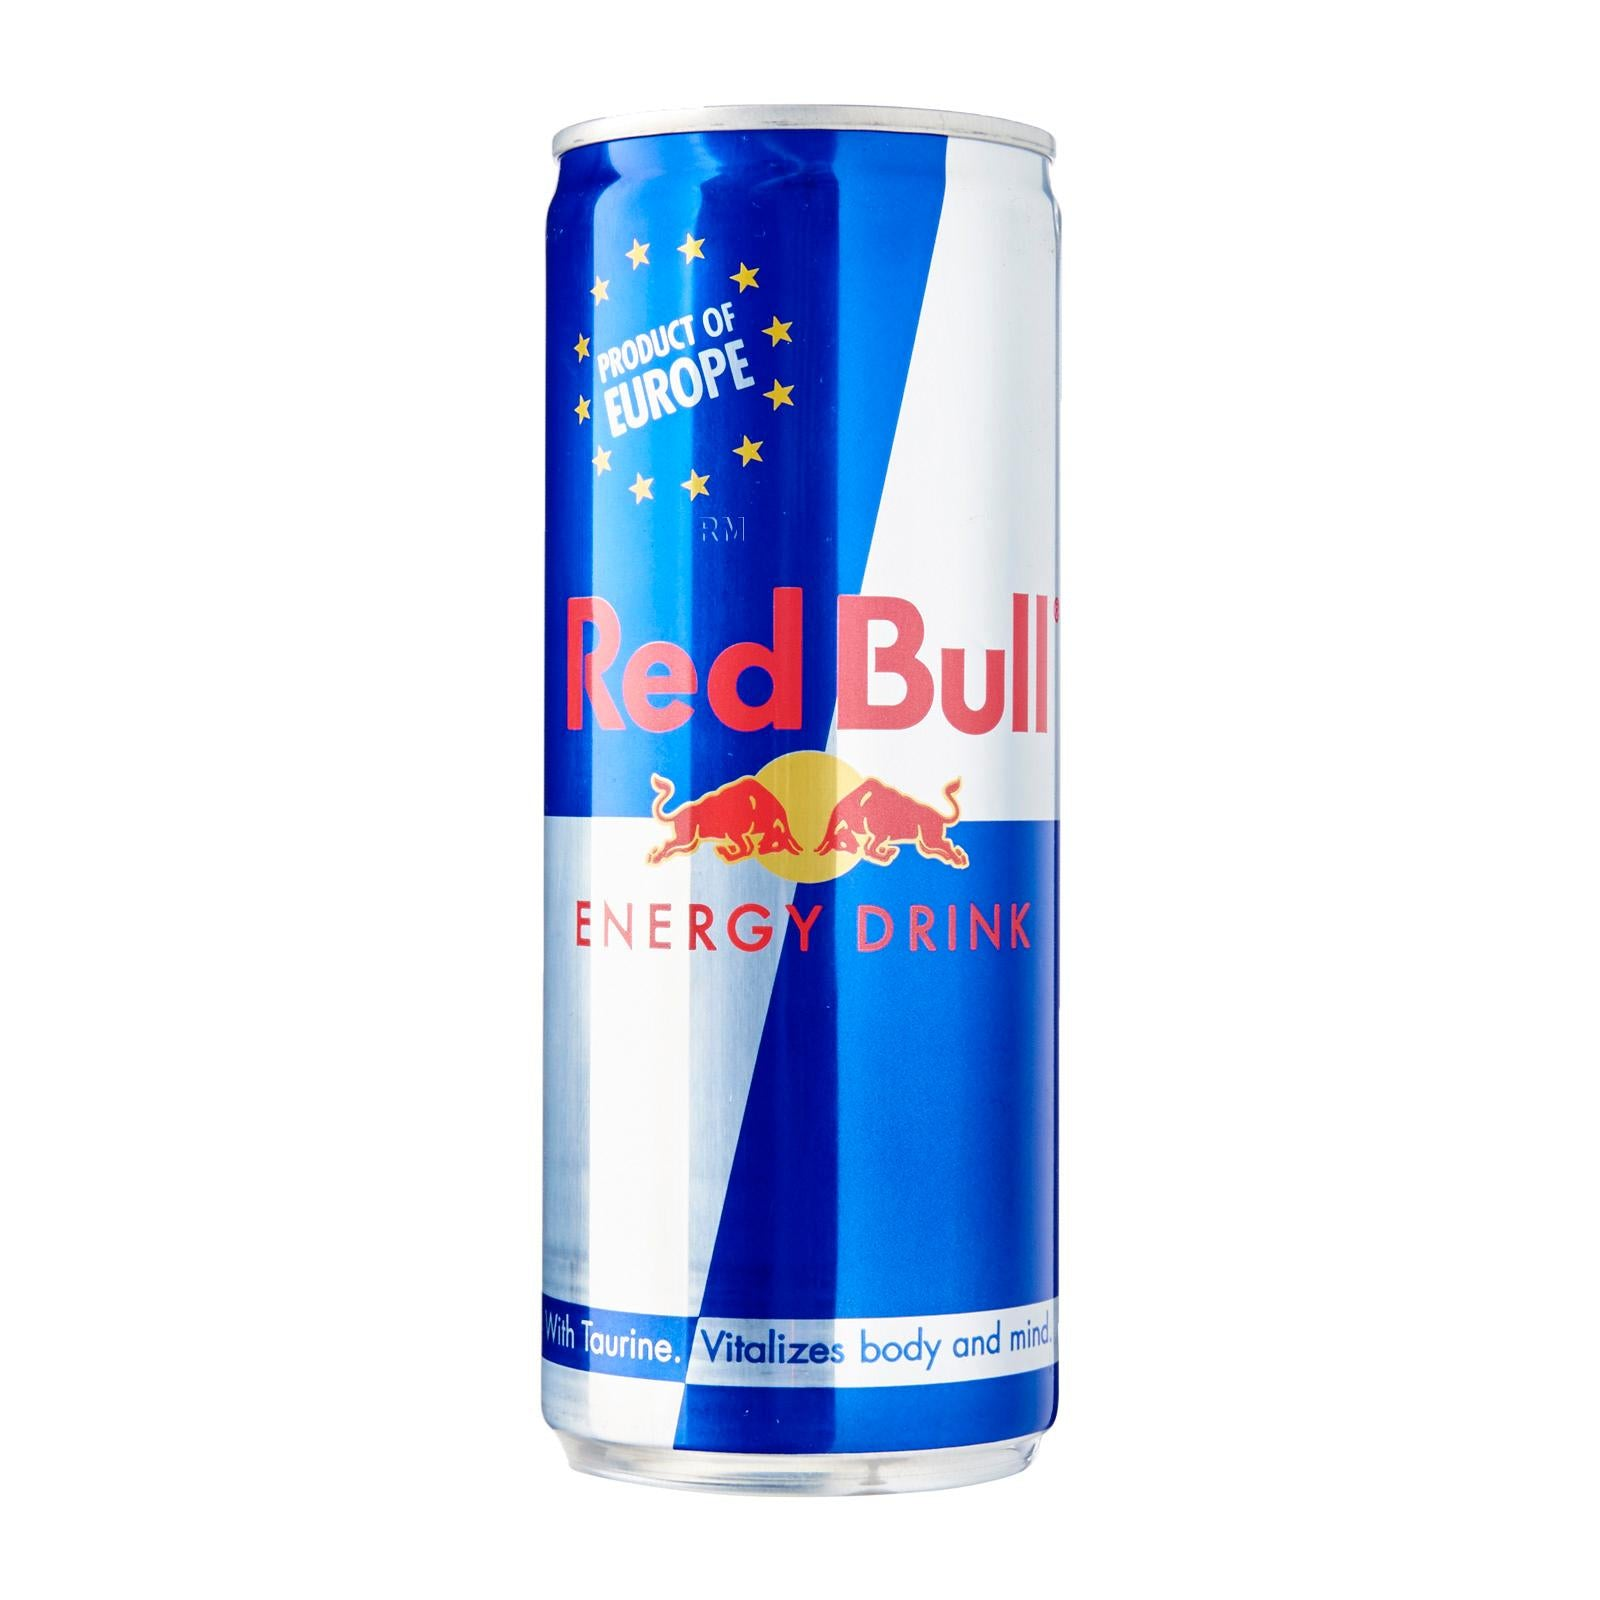 [BLACK FRIDAY DEAL] Red Bull Drinks - 24 cans x 250ml at $36!